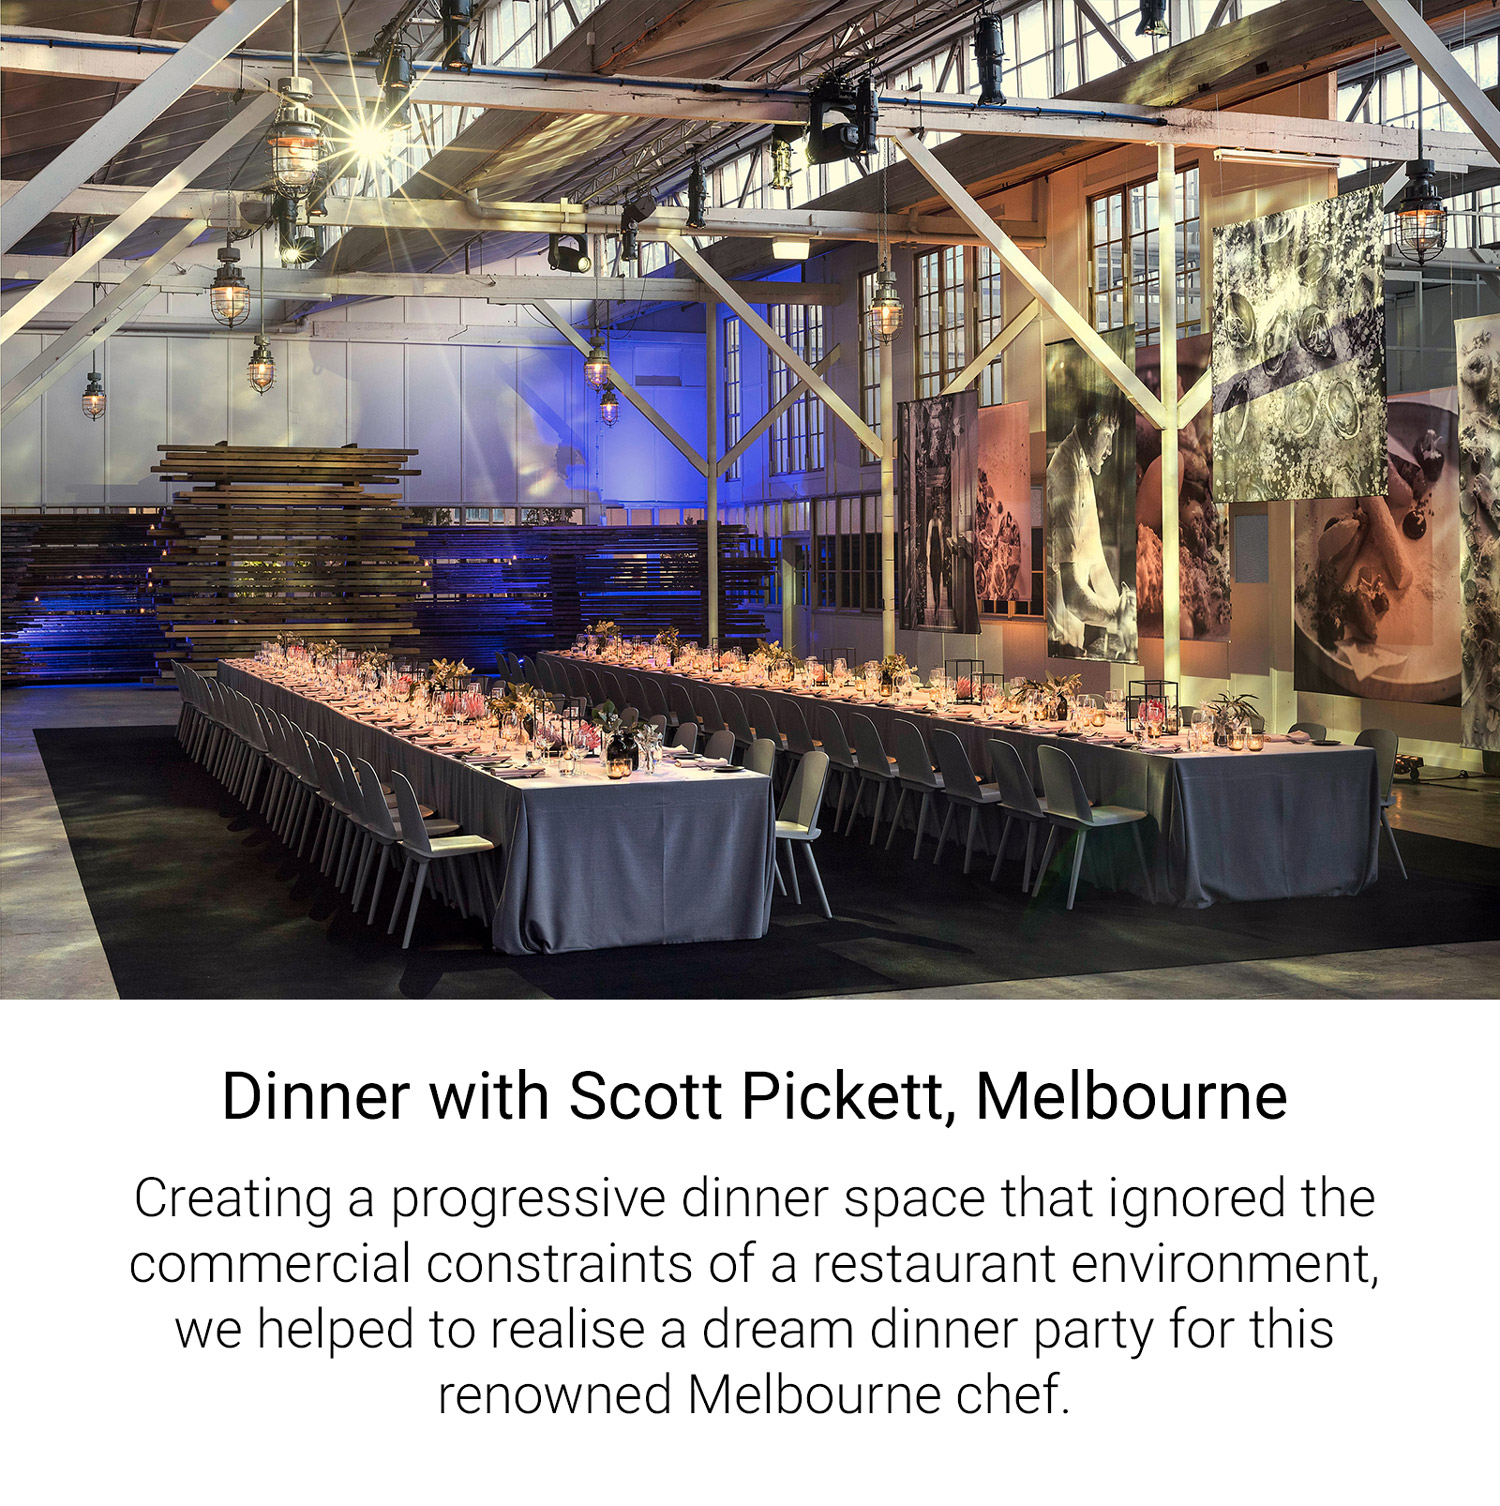 Dinner with Scott Pickett, Melbourne